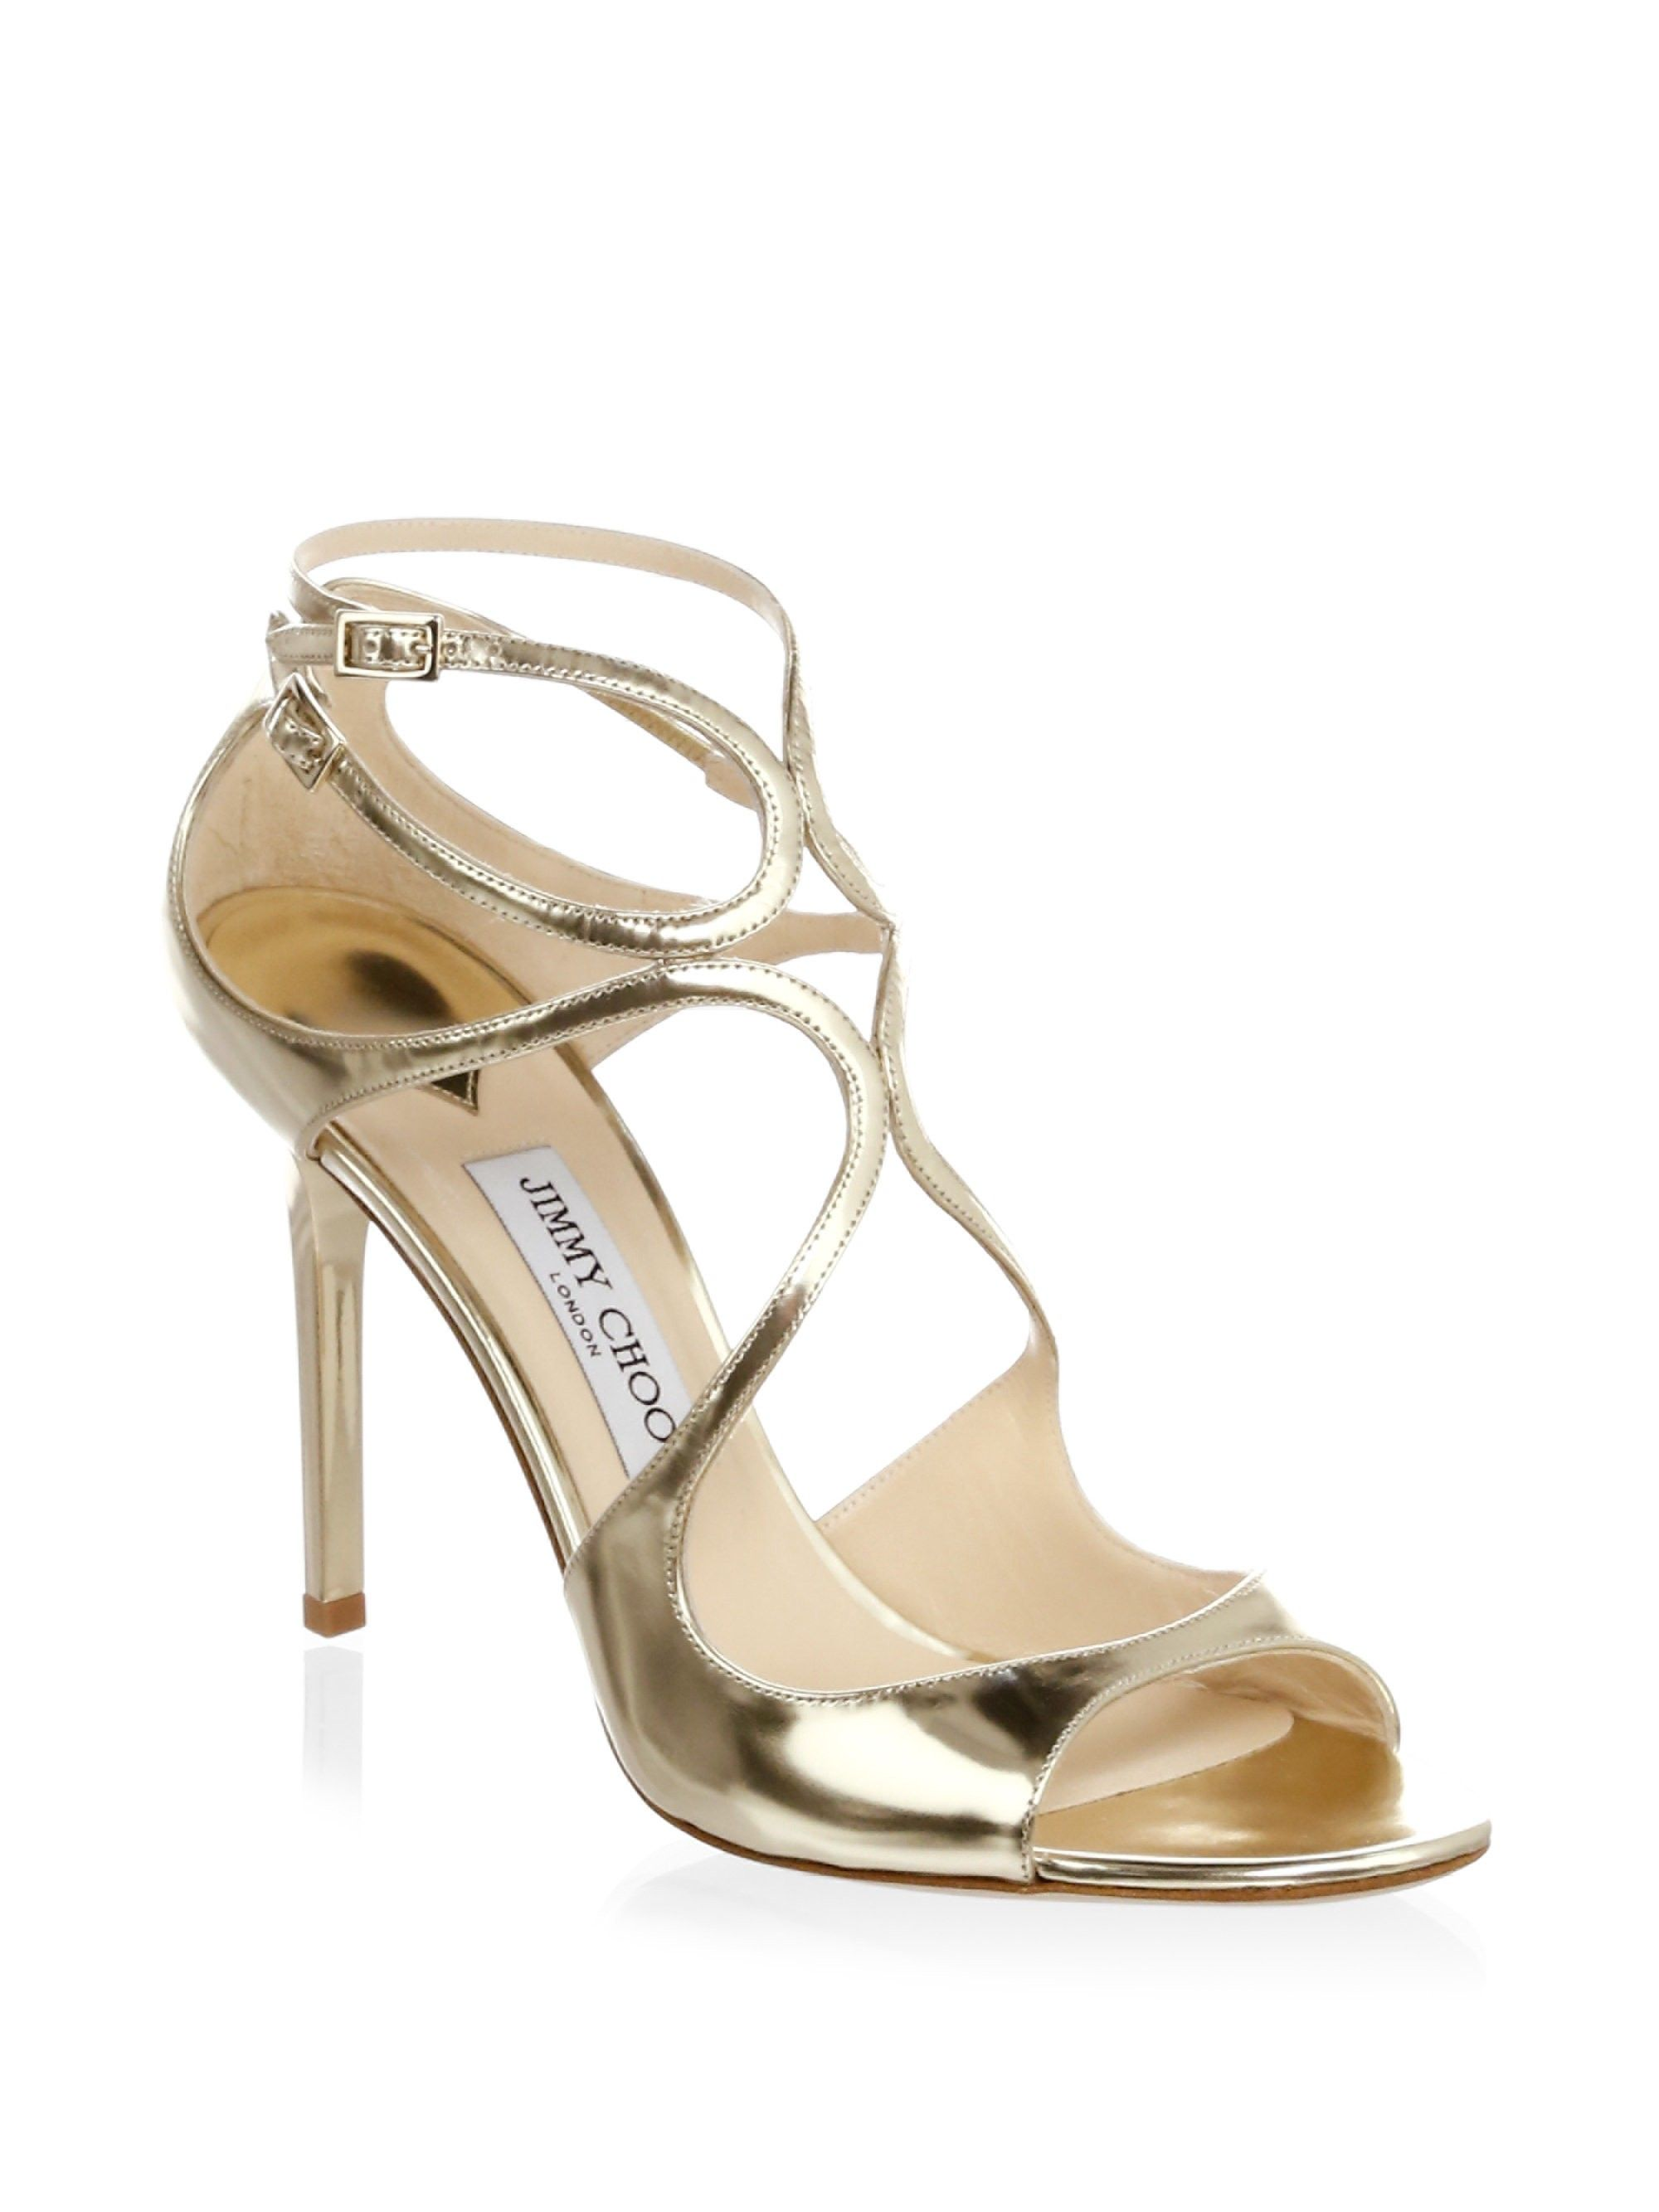 0ff8785dbe9 Jimmy Choo Pat Strappy Sandals - Gold 41.5 (11.5)